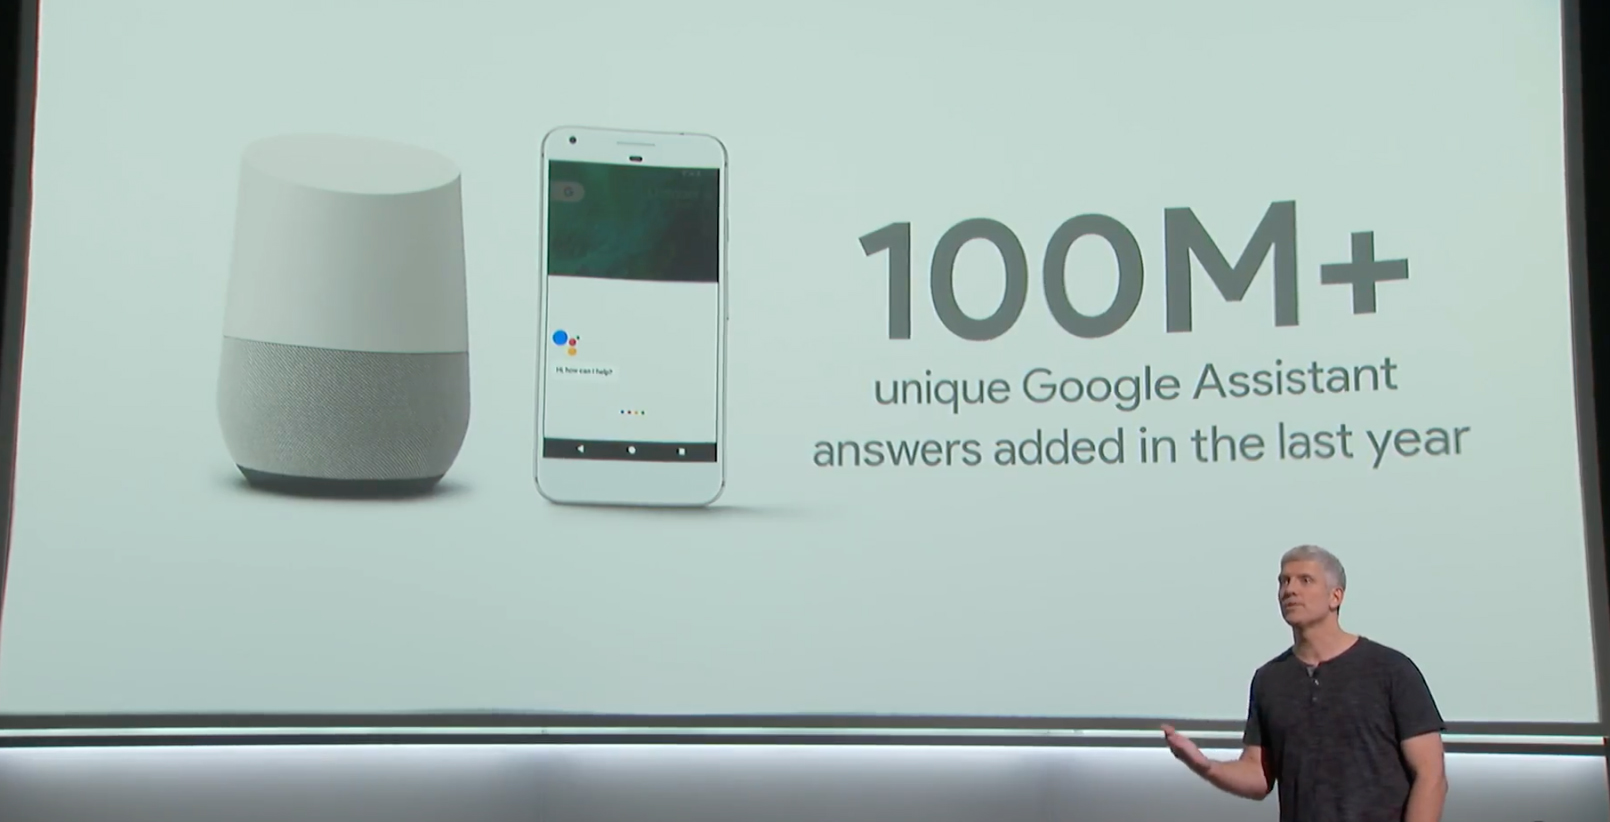 How to switch Google Assistant's voice to male